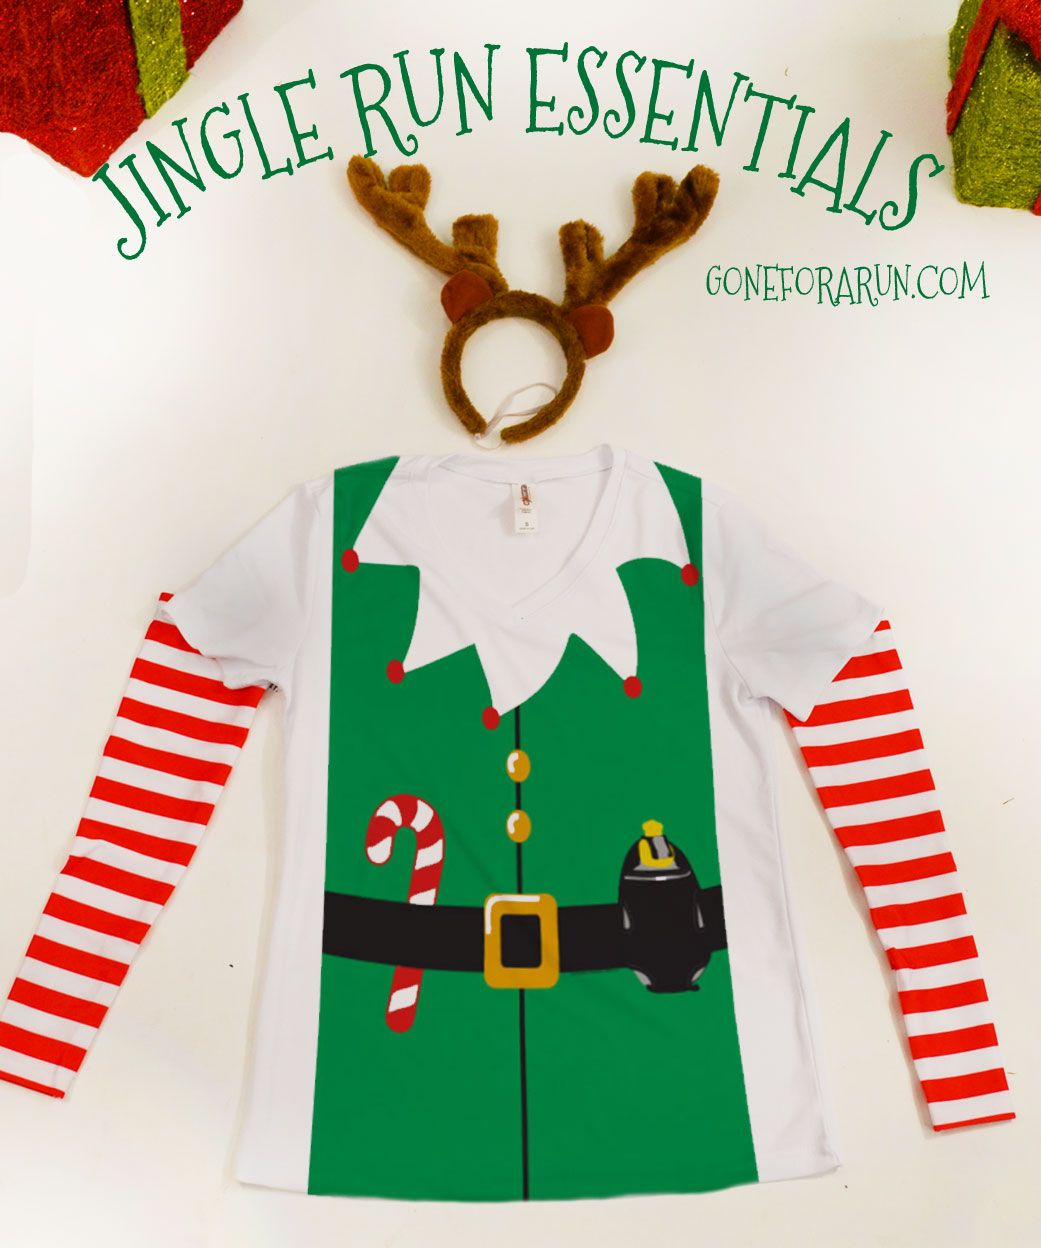 With our Jingle Run Essentials you will be ready to spread holiday ...